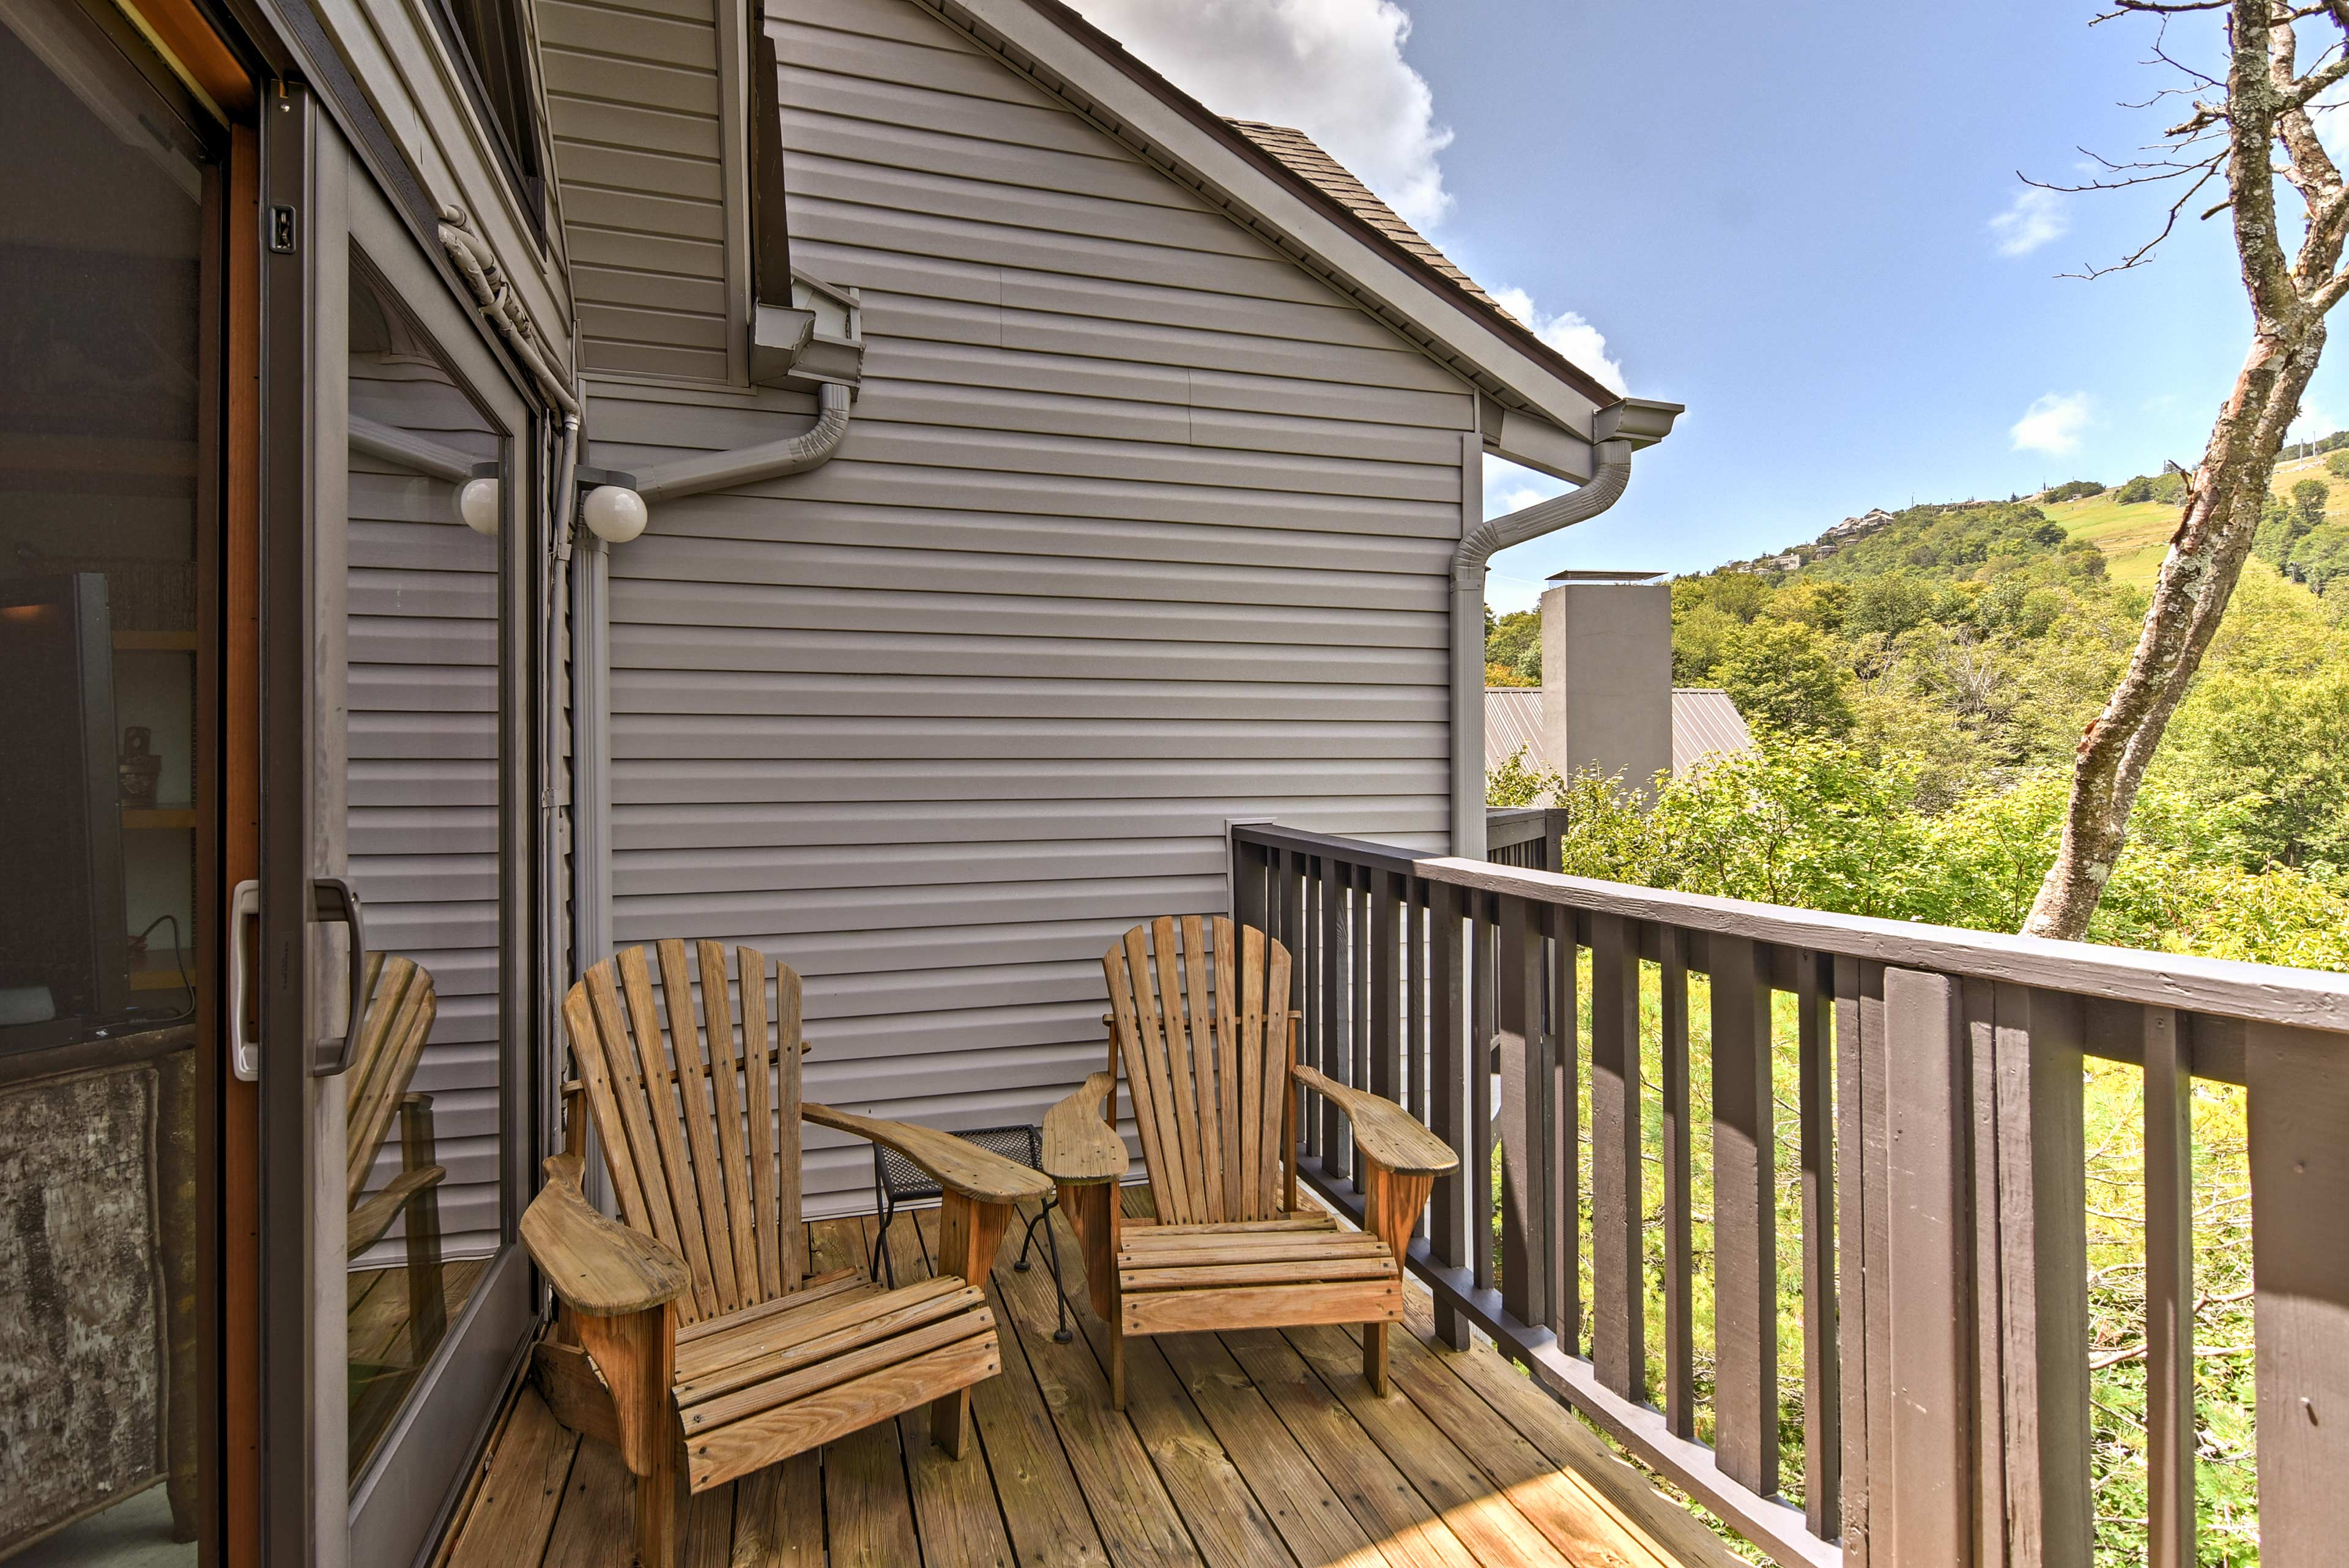 Grab your favorite book and enjoy a quiet afternoon in the Adirondack chairs.